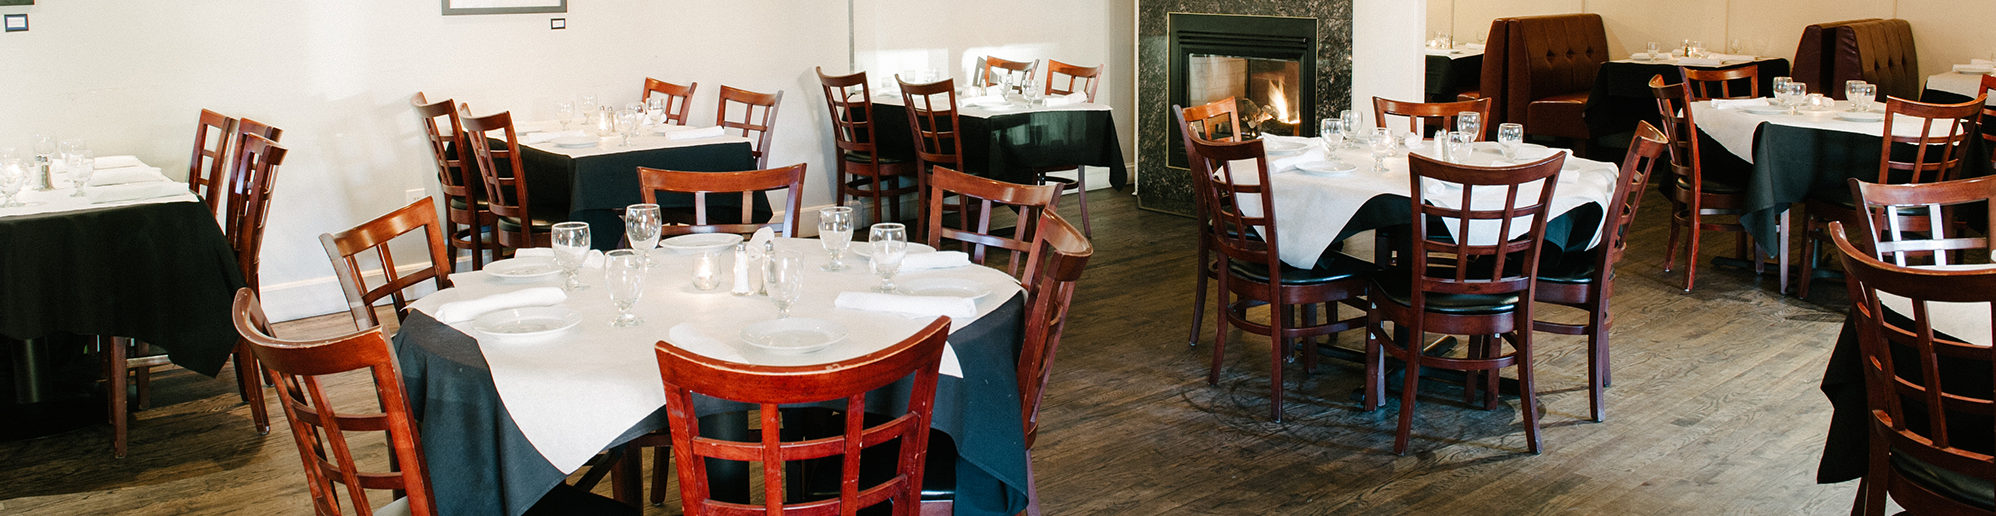 Round tables and seating at The Local